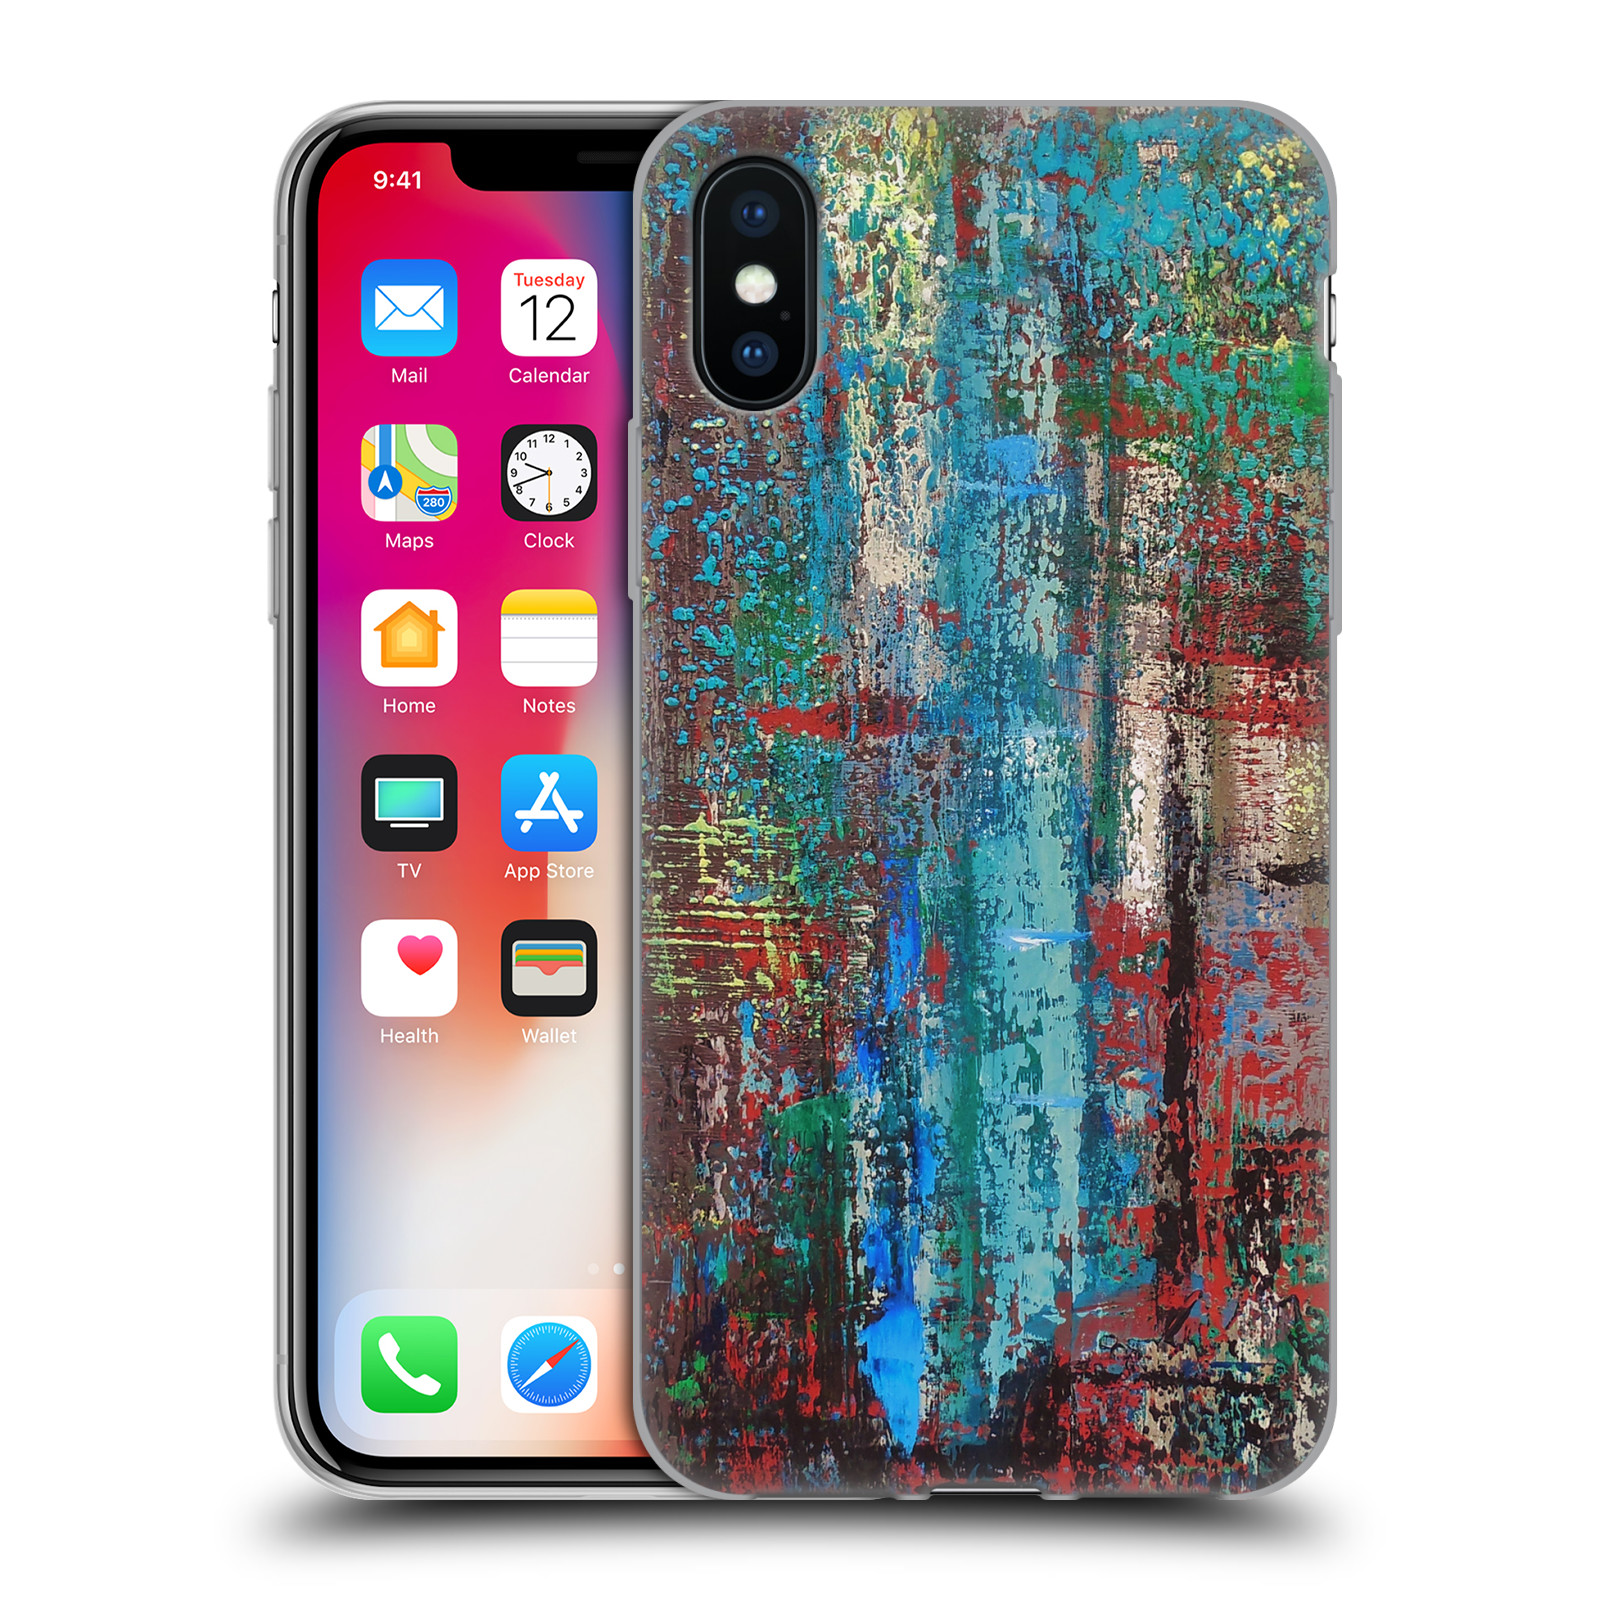 OFFICIAL-ROCK-DEMARCO-PAINTED-ART-SOFT-GEL-CASE-FOR-APPLE-iPHONE-PHONES